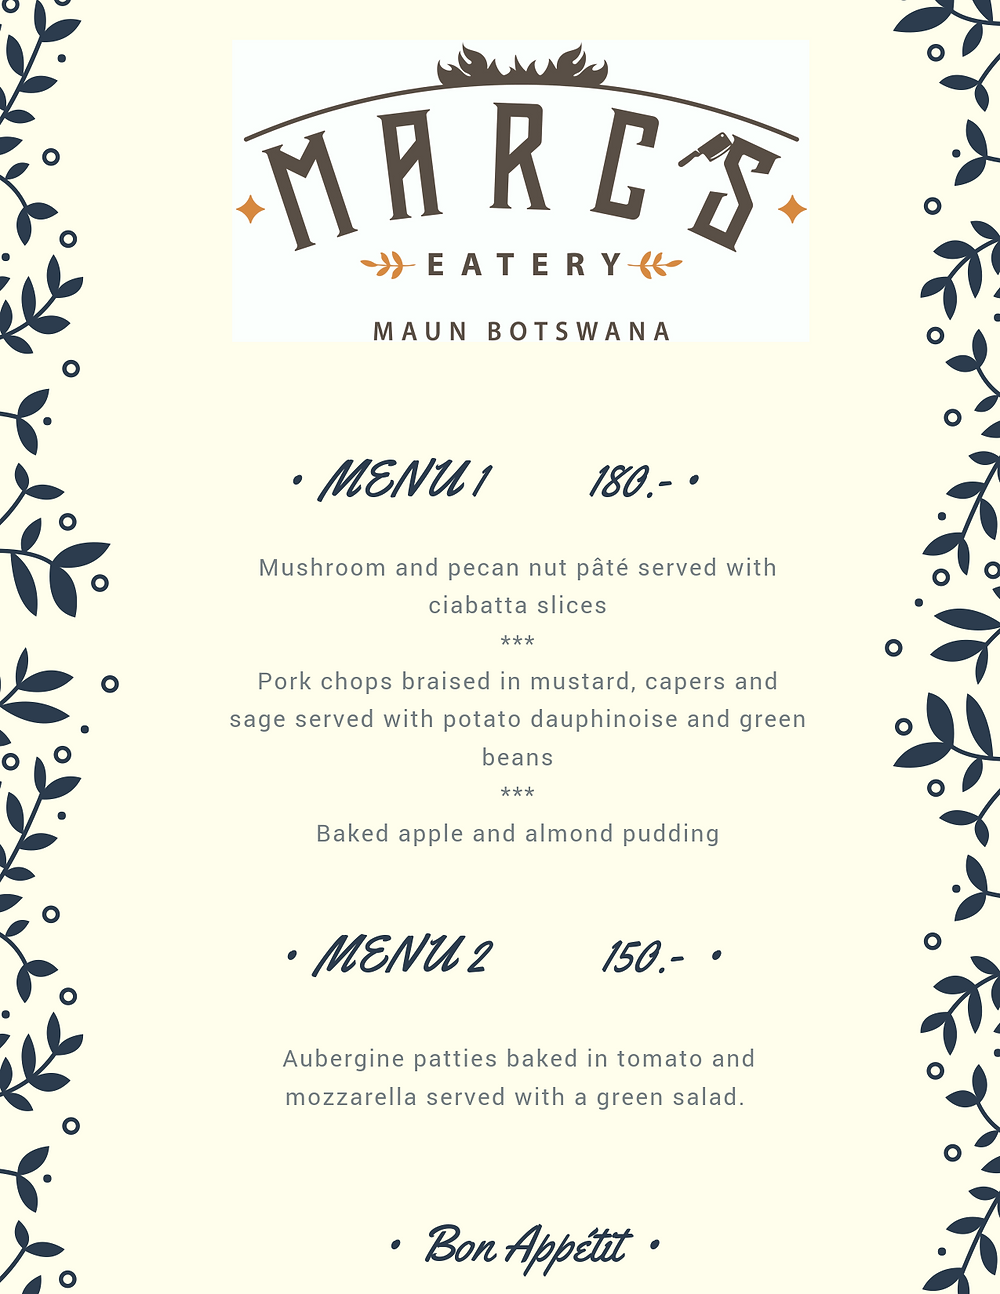 Wednesday Dinner Menu at Marc's Eatery